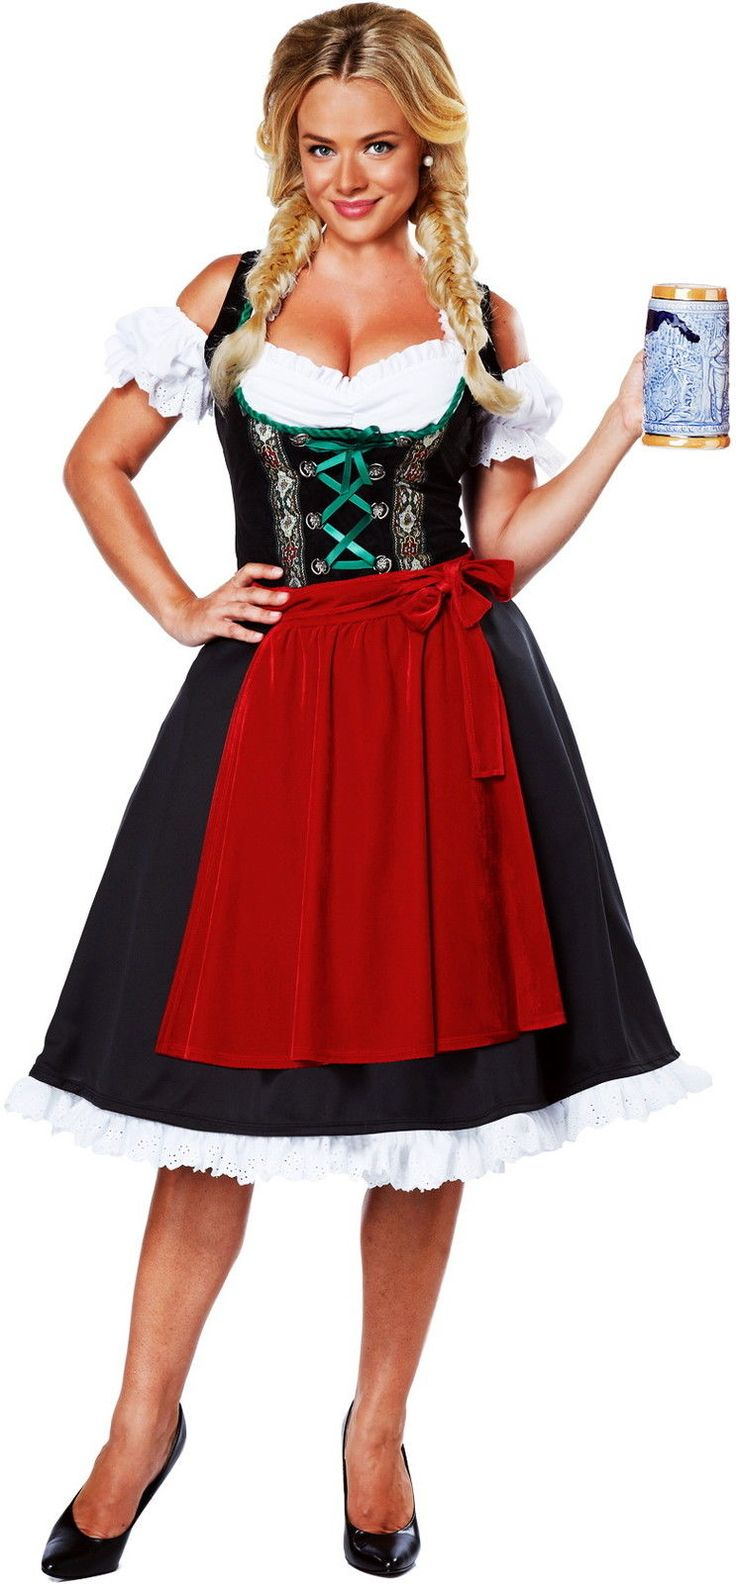 Cheers Traditional German Dirndl Fraulein Dress Oktoberfest Costume Adult Women